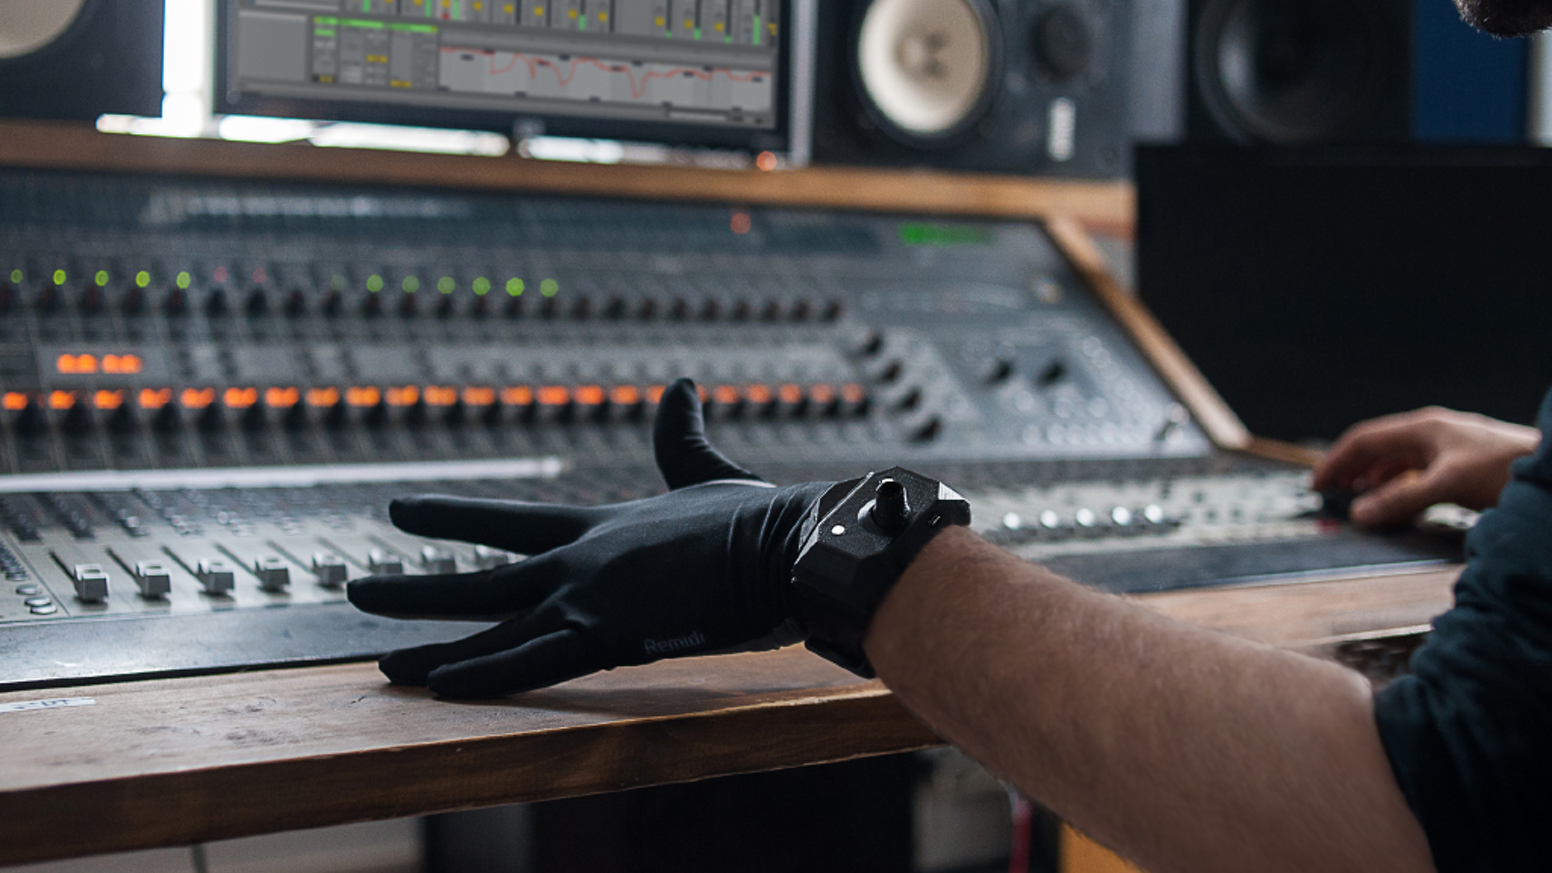 Sensors in fingers & palm trigger custom sounds while connected wrist-controller/hand gestures control effects with reverb, echo, etc.